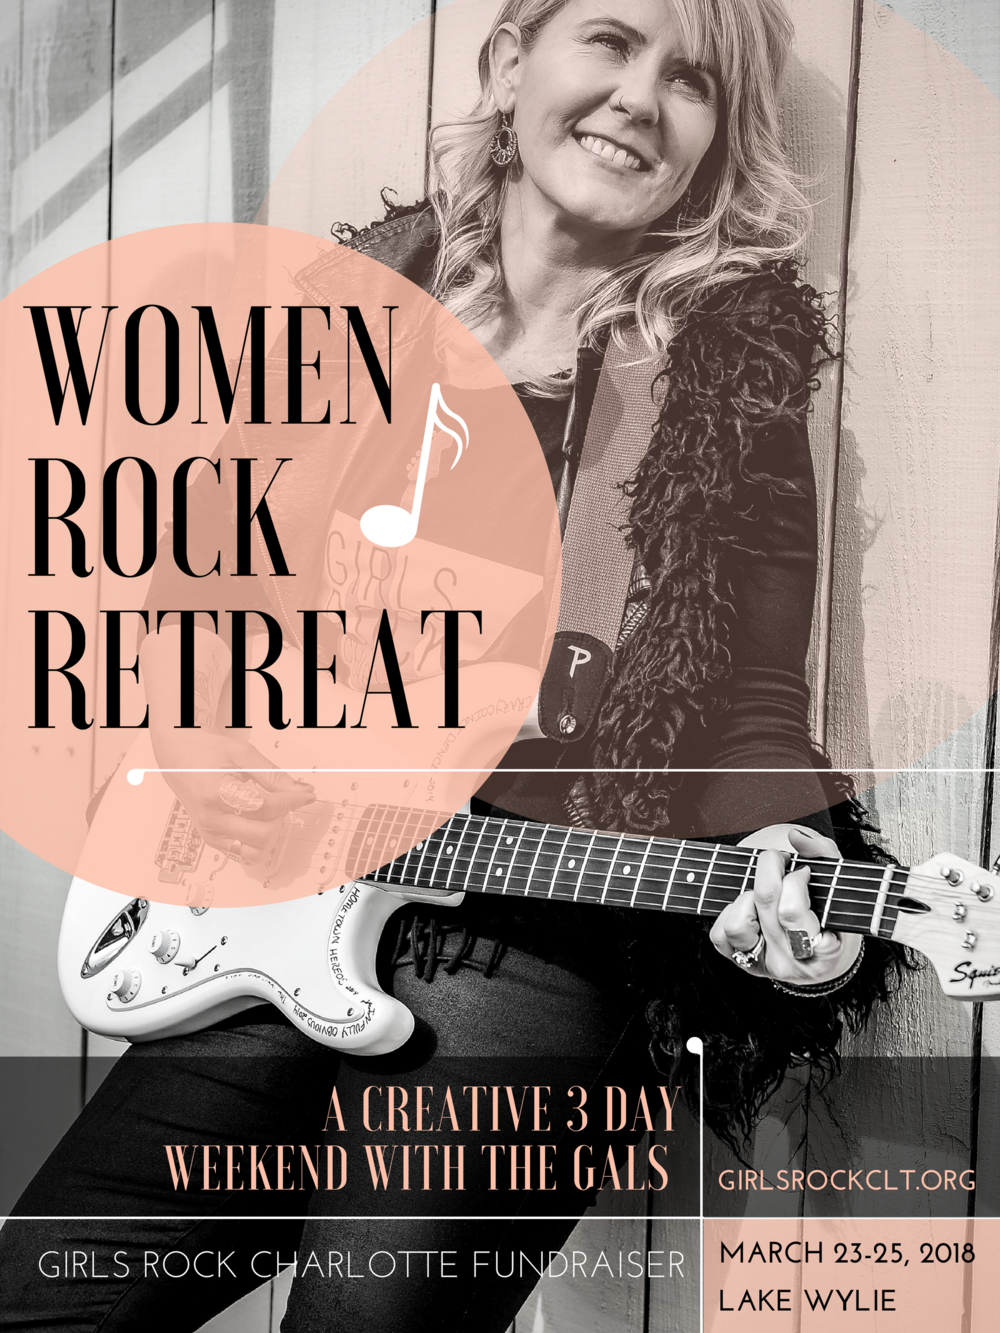 Womenrockretreat (2).png